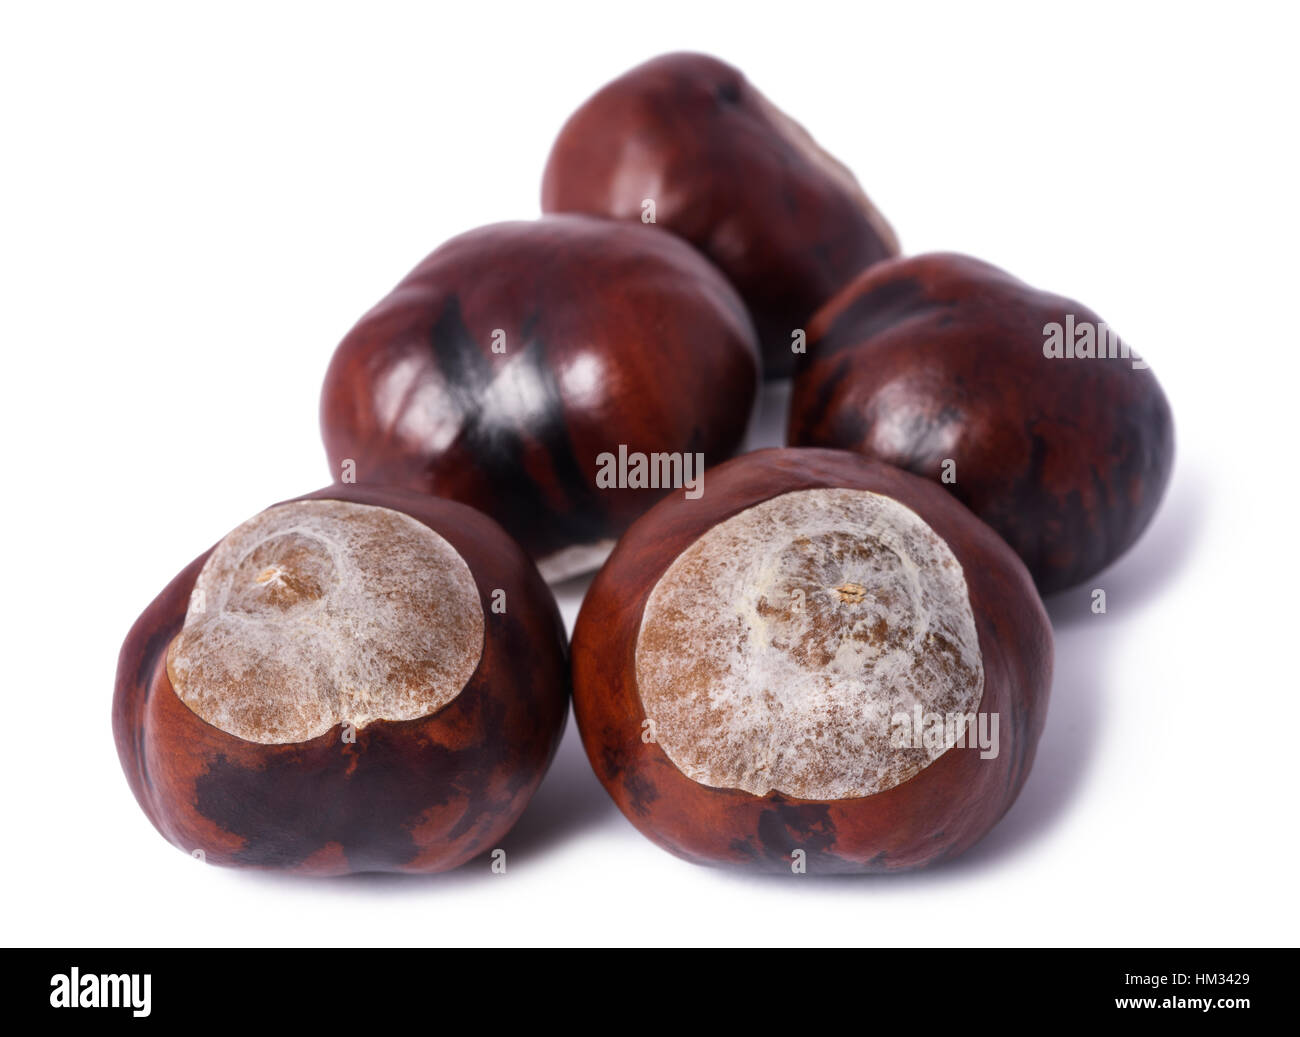 horse-chestnut conkers isolated on white background - Stock Image